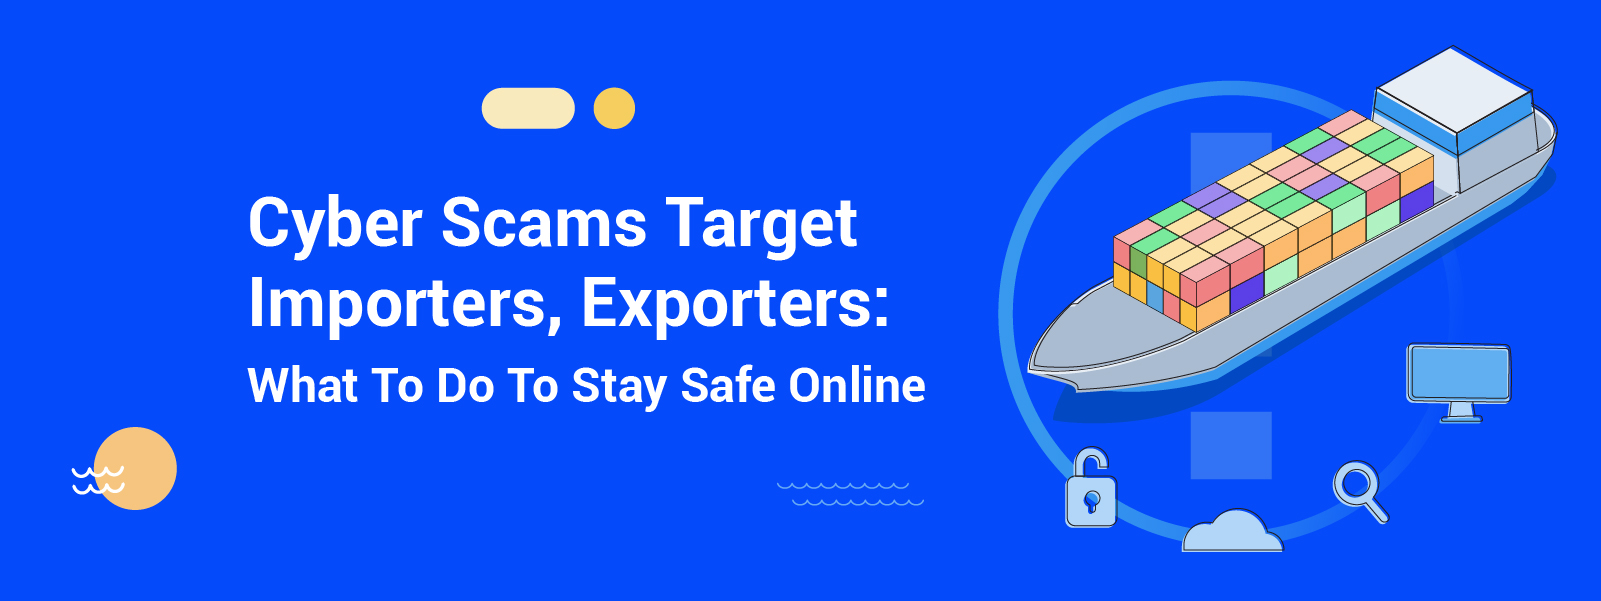 Cyber Scams Target Importers, Exporters: What To Do To Stay Safe Online